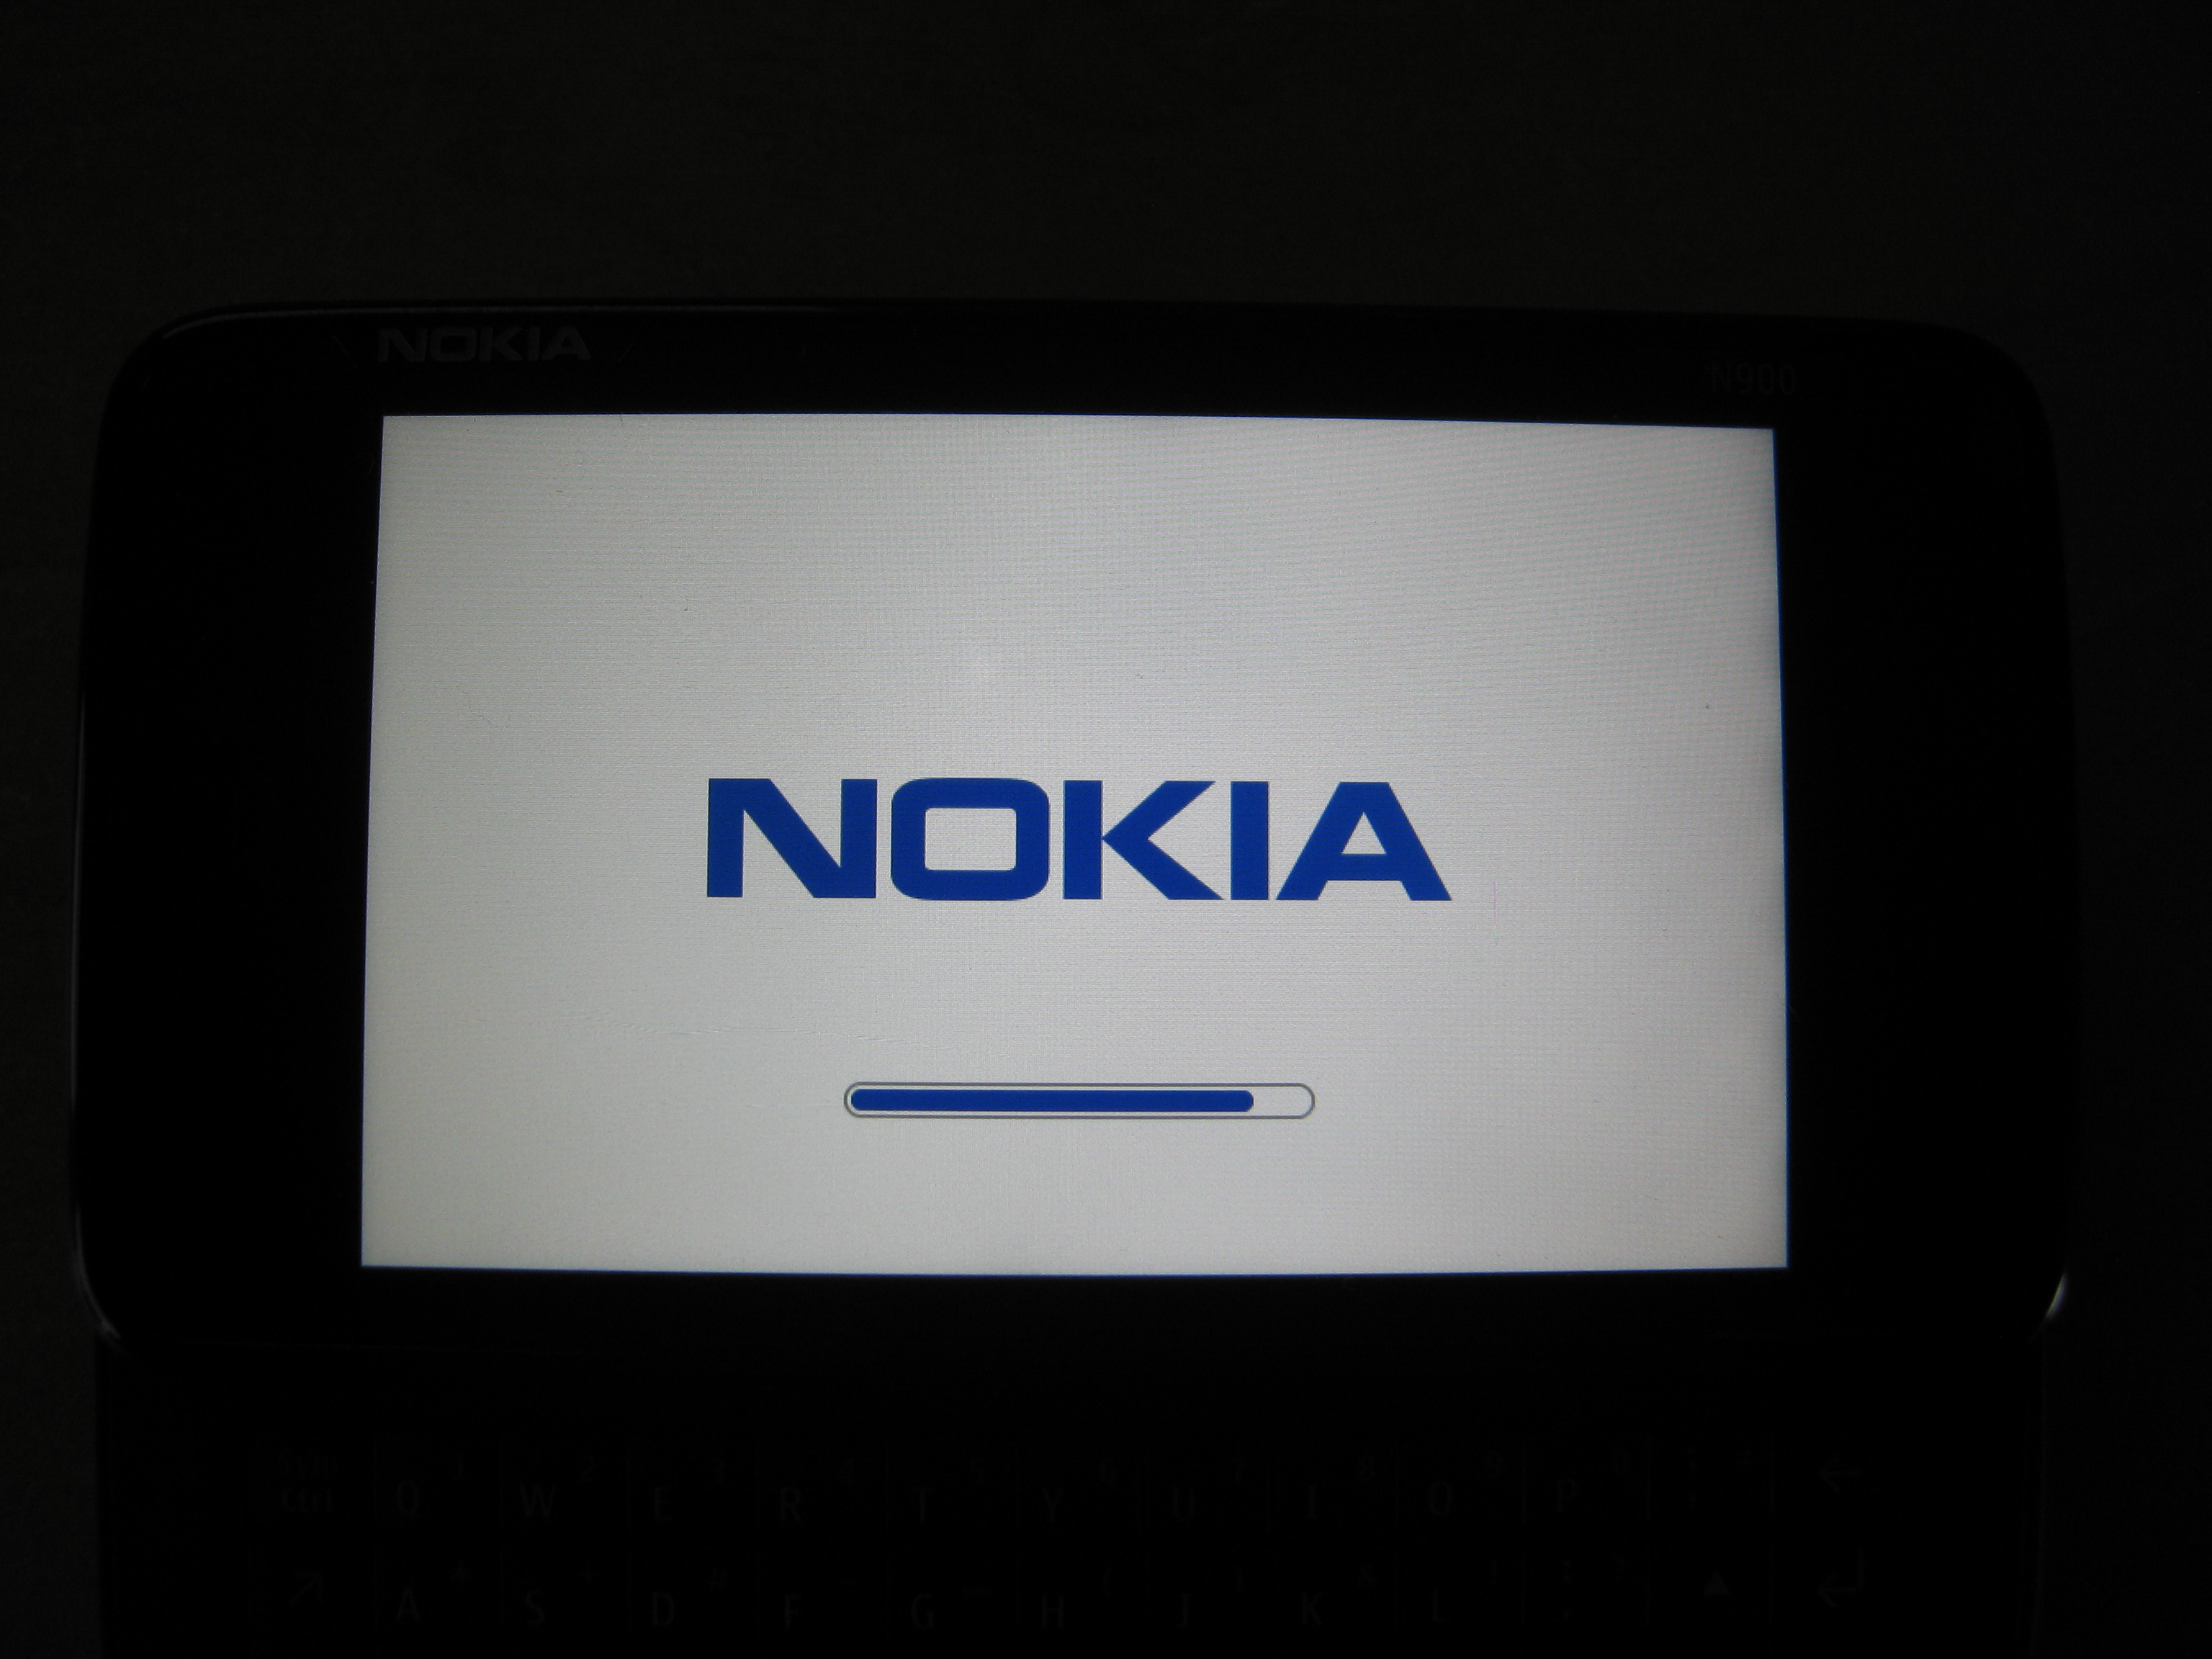 MyNokiaBlog Weekly Post Round Up (Ep 1): N900 firmware updates, X6 review and opening of Ovi Store for N900